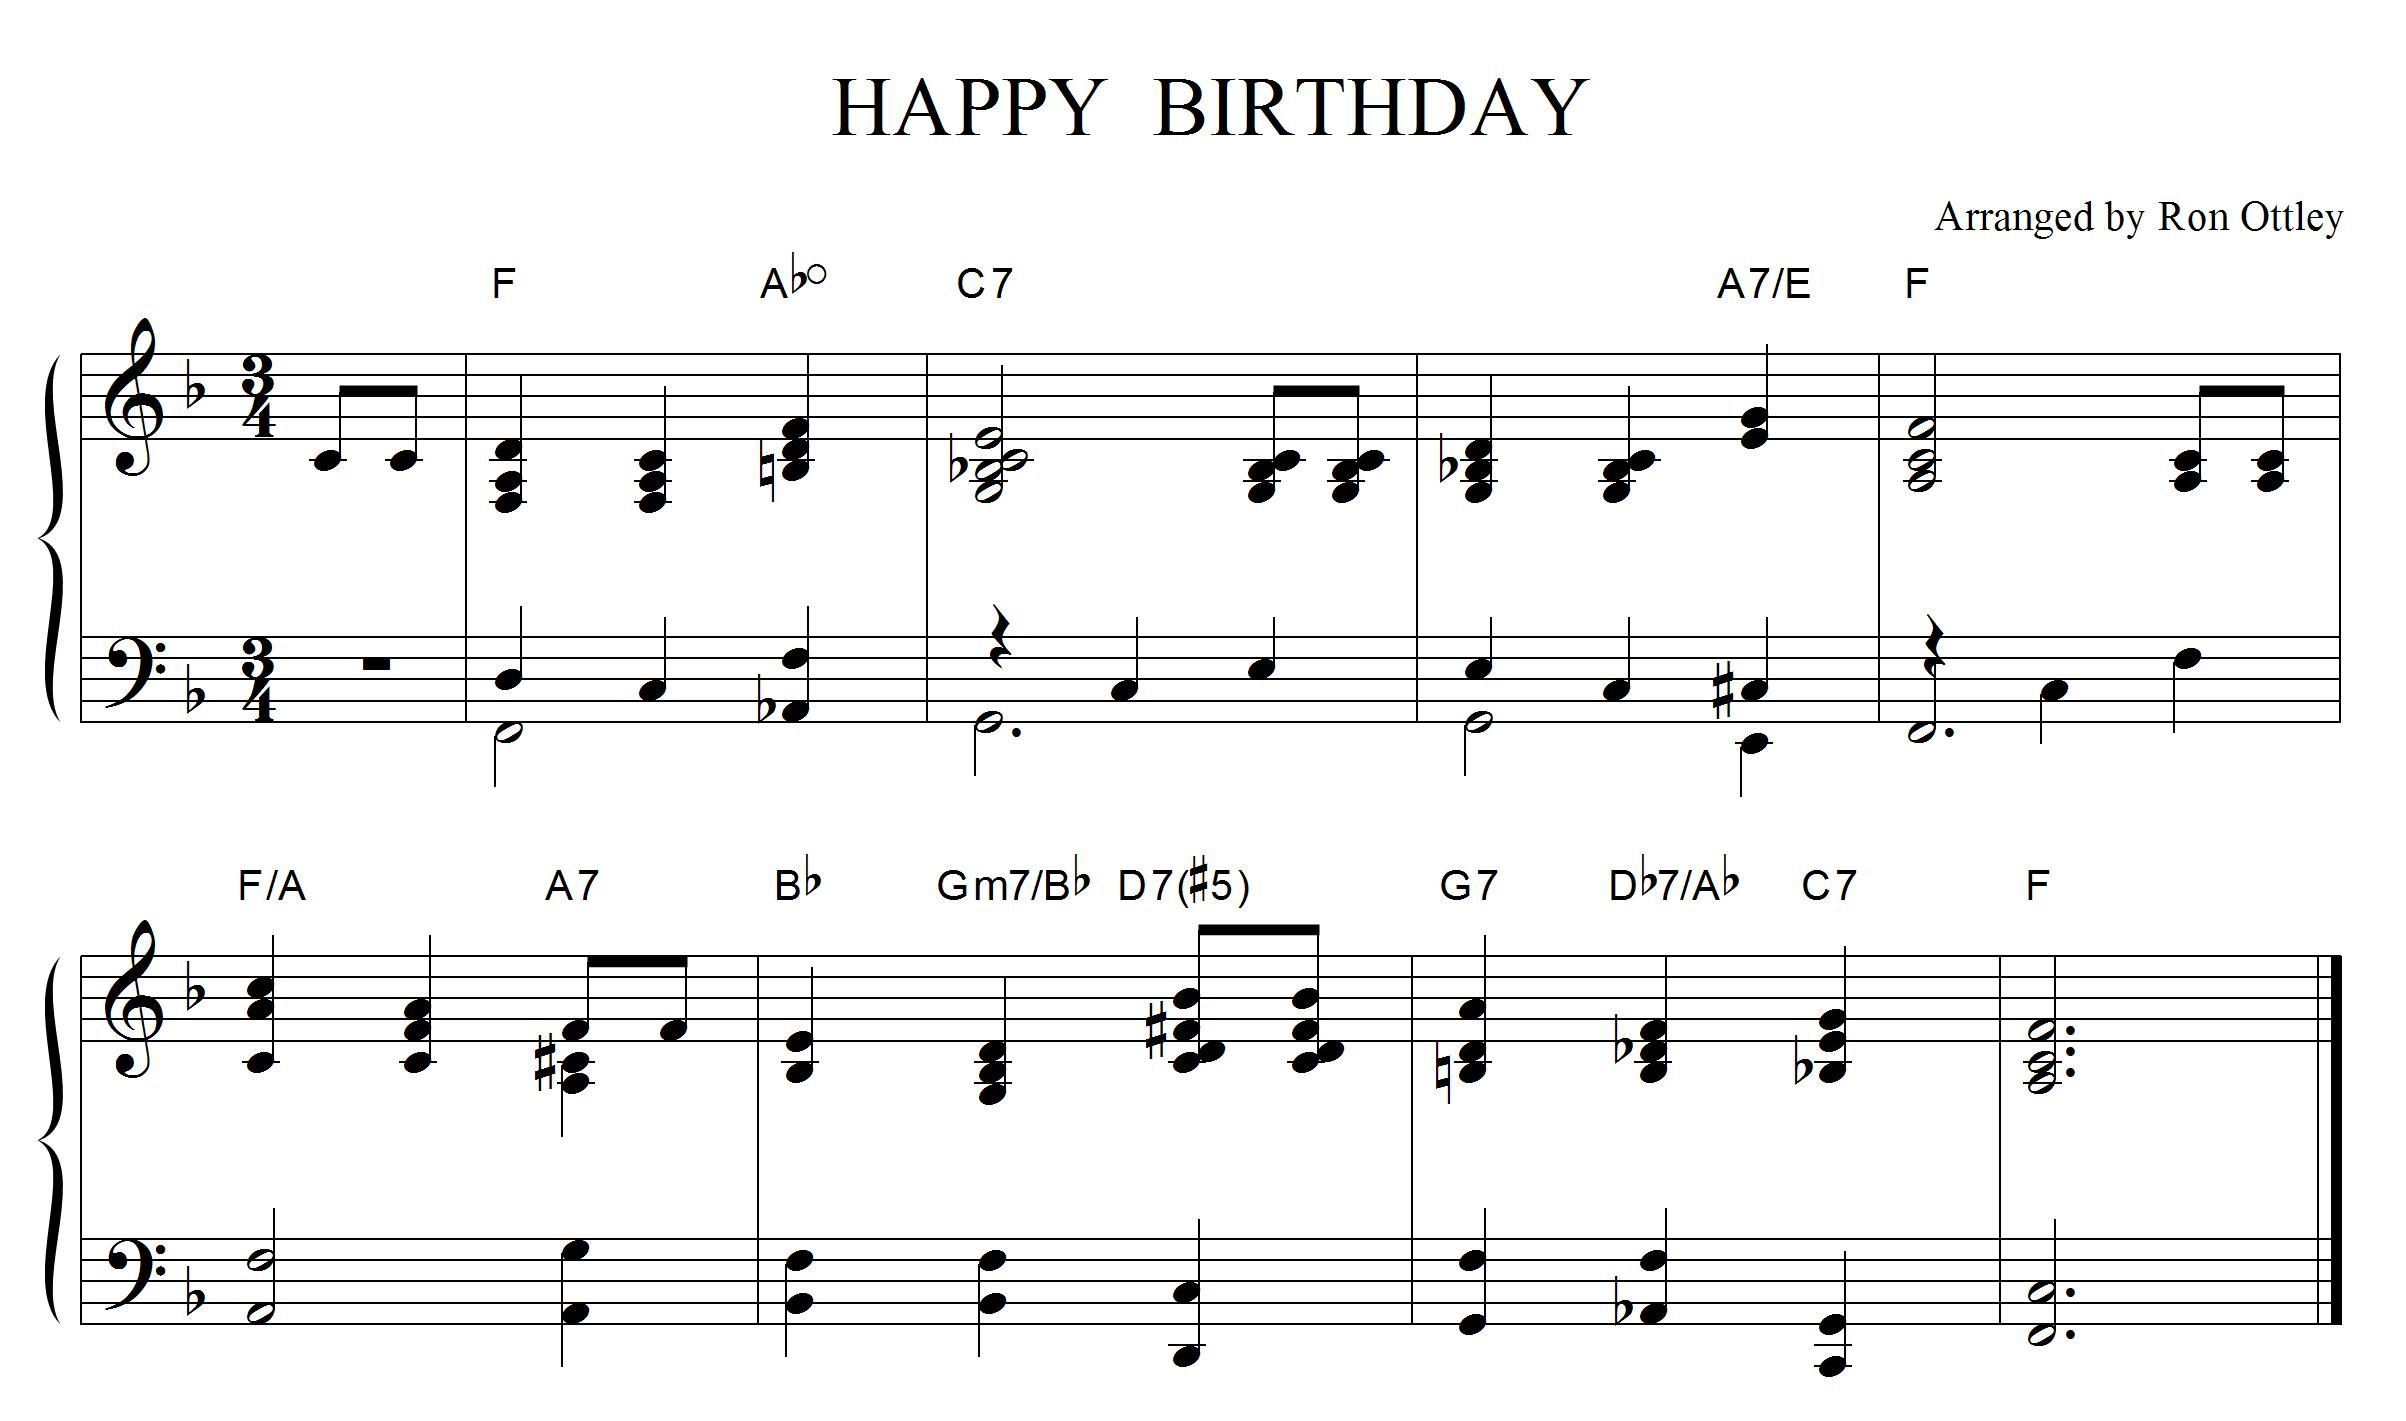 Playing Happy Birthday on piano instead of singing it is more fun. : Music for piano : Pinterest ...